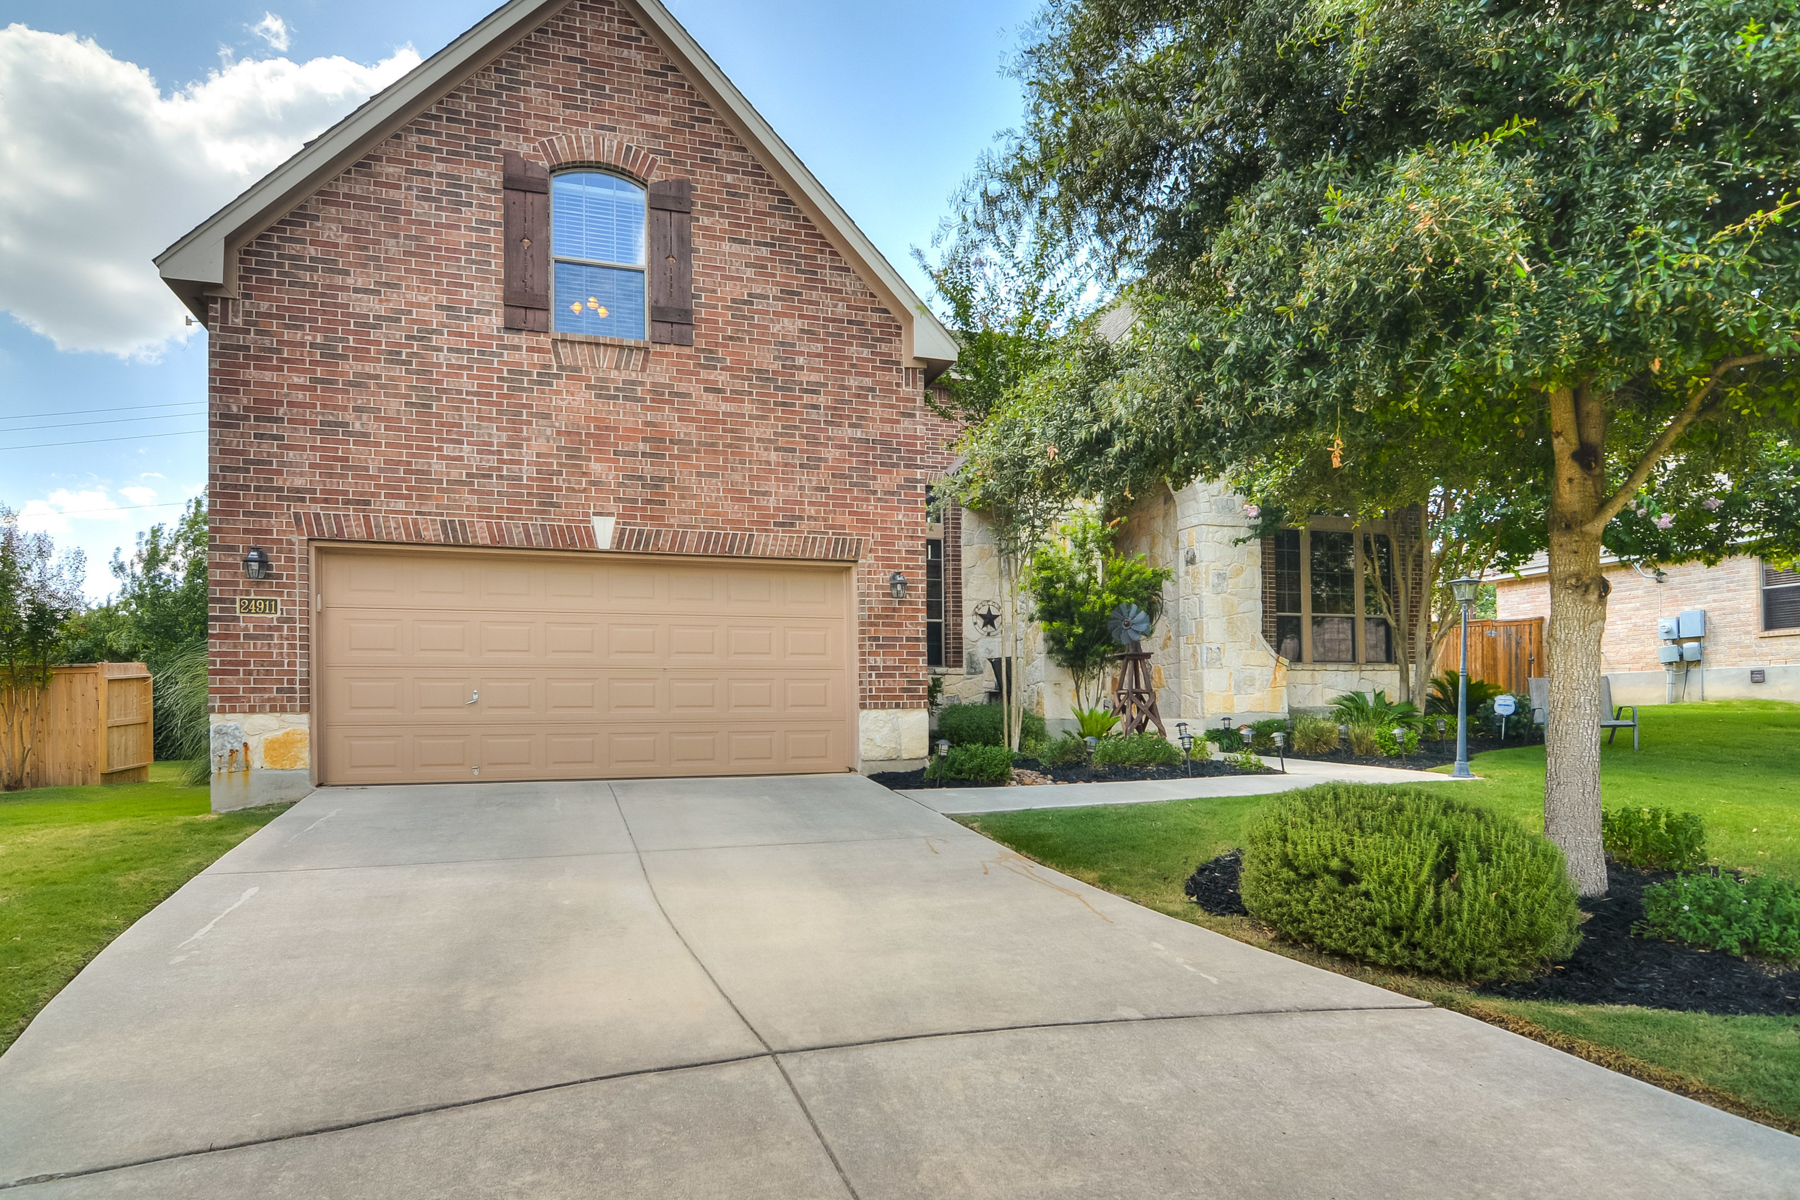 Single Family Home for Sale at Beautiful Home in Two Creeks 24911 Kiowa Crk San Antonio, Texas 78255 United States